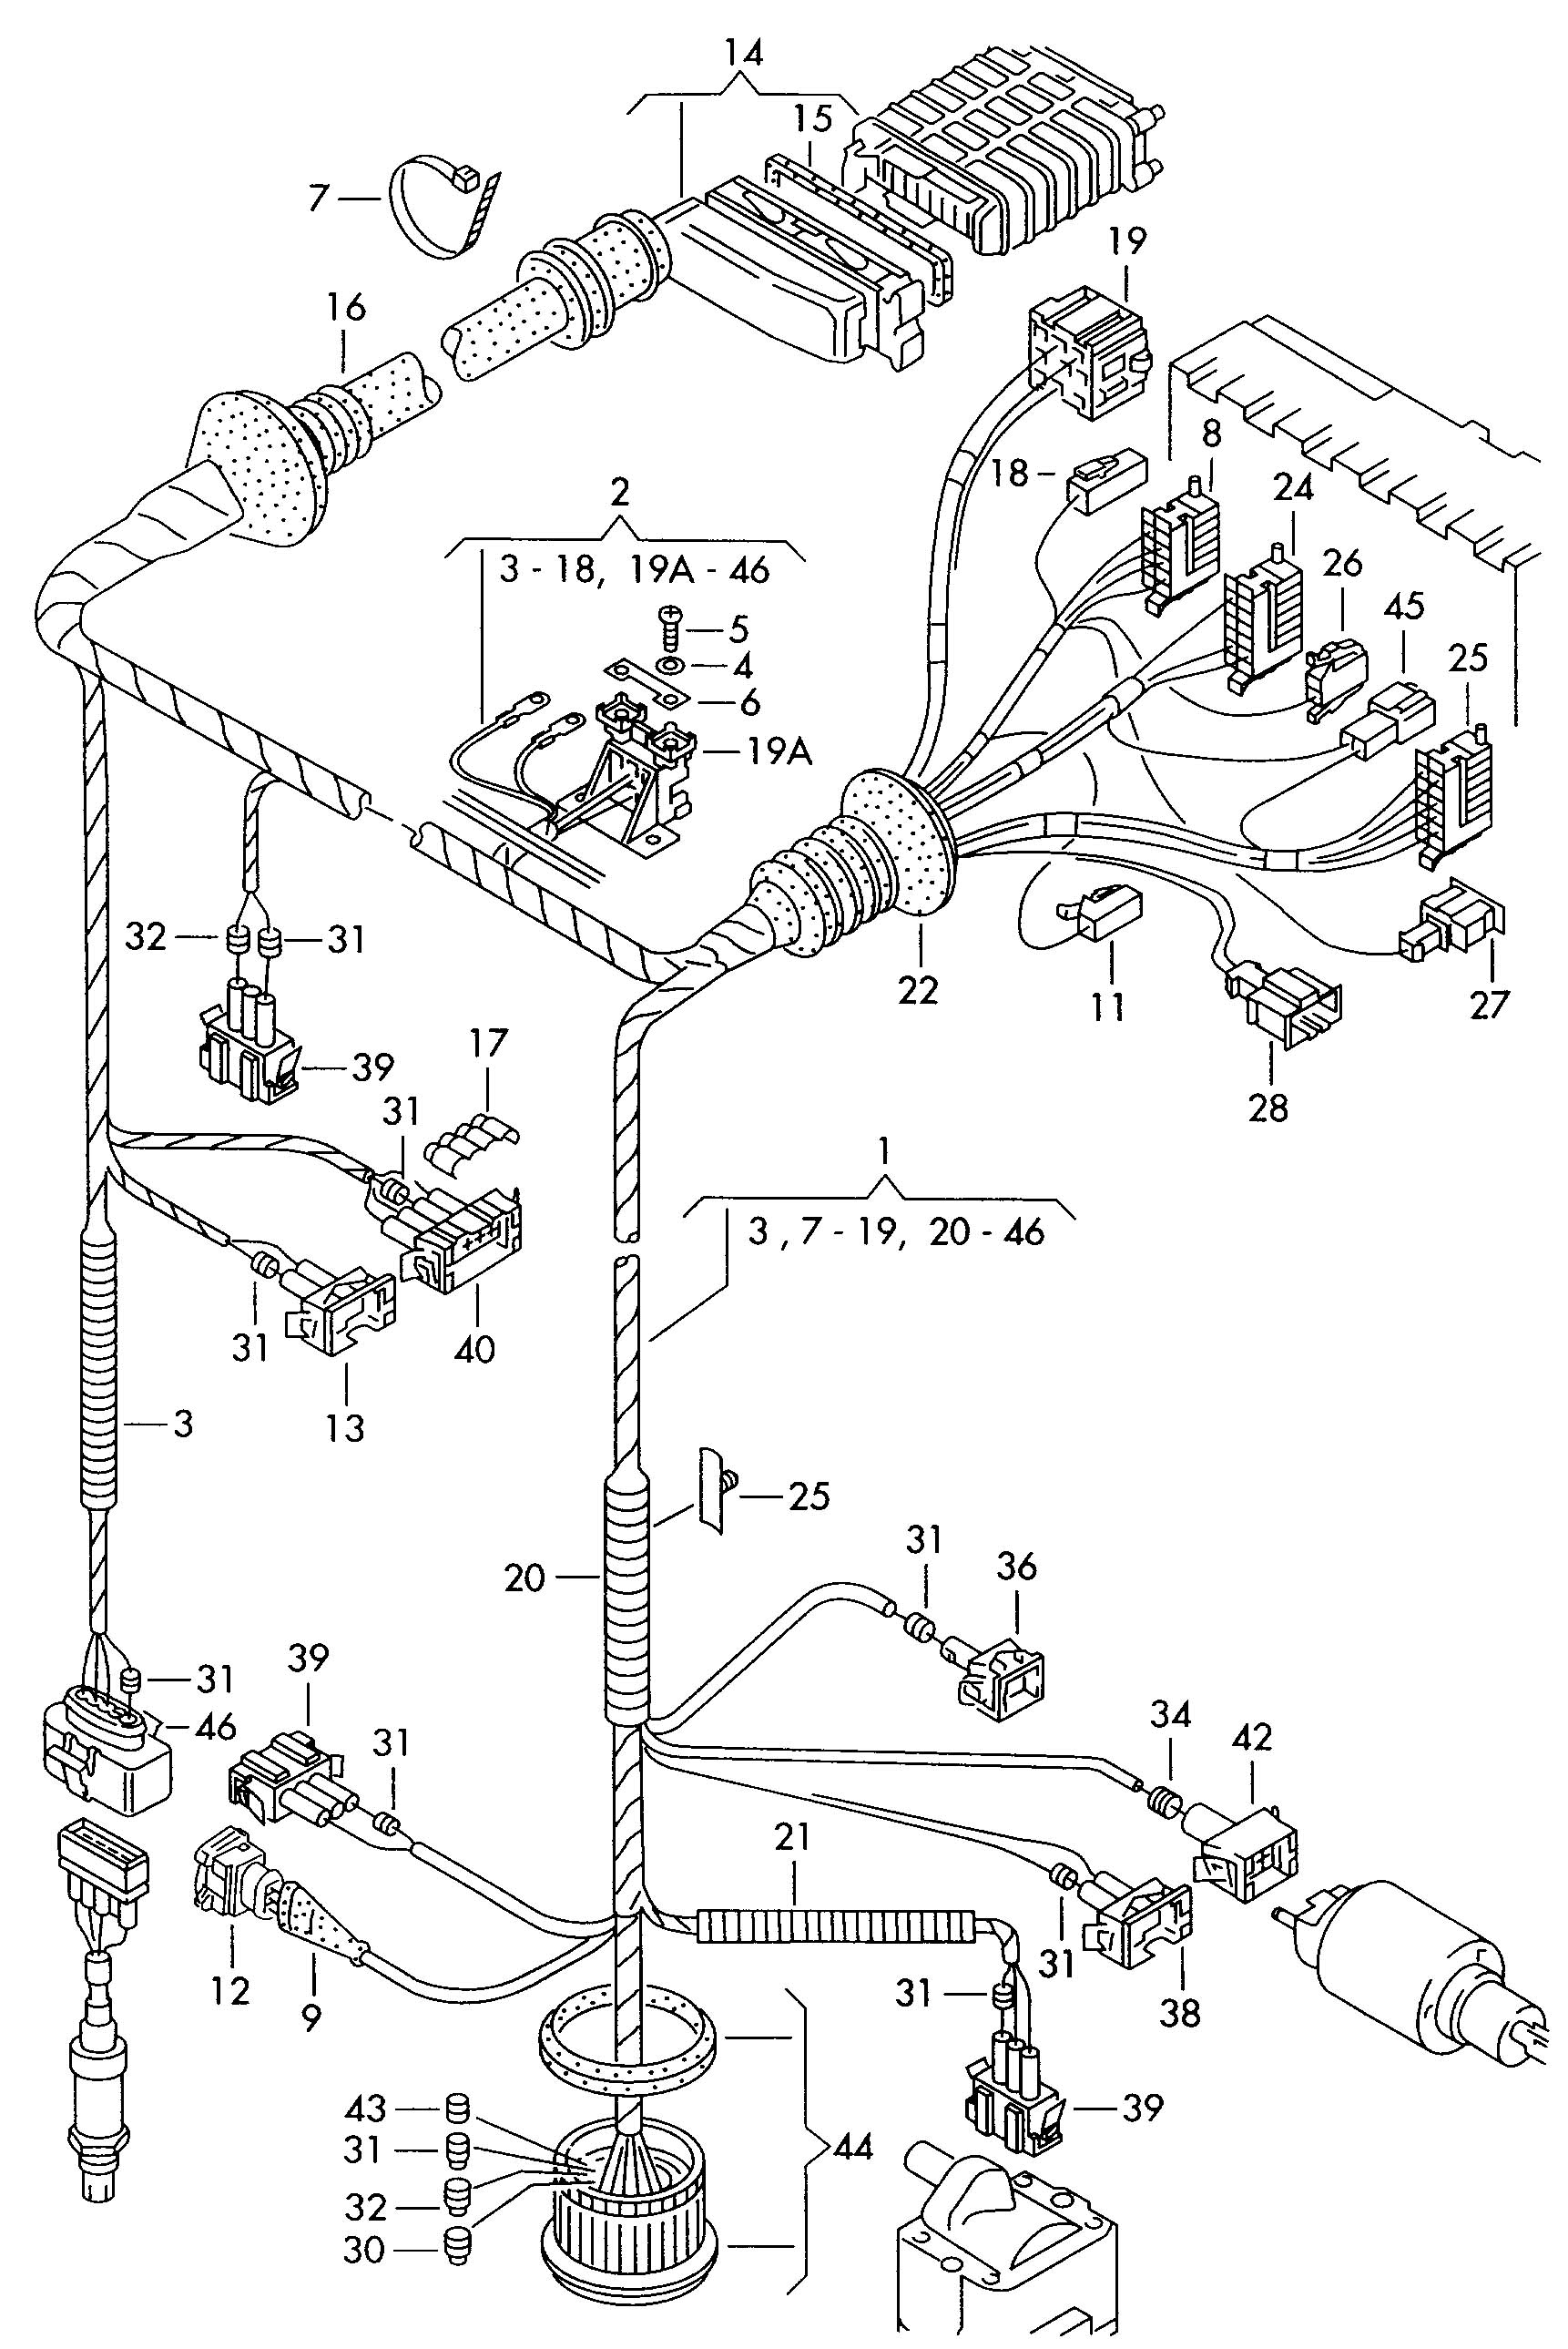 Vw Aba Engine Parts Diagram. Diagram. Auto Wiring Diagram